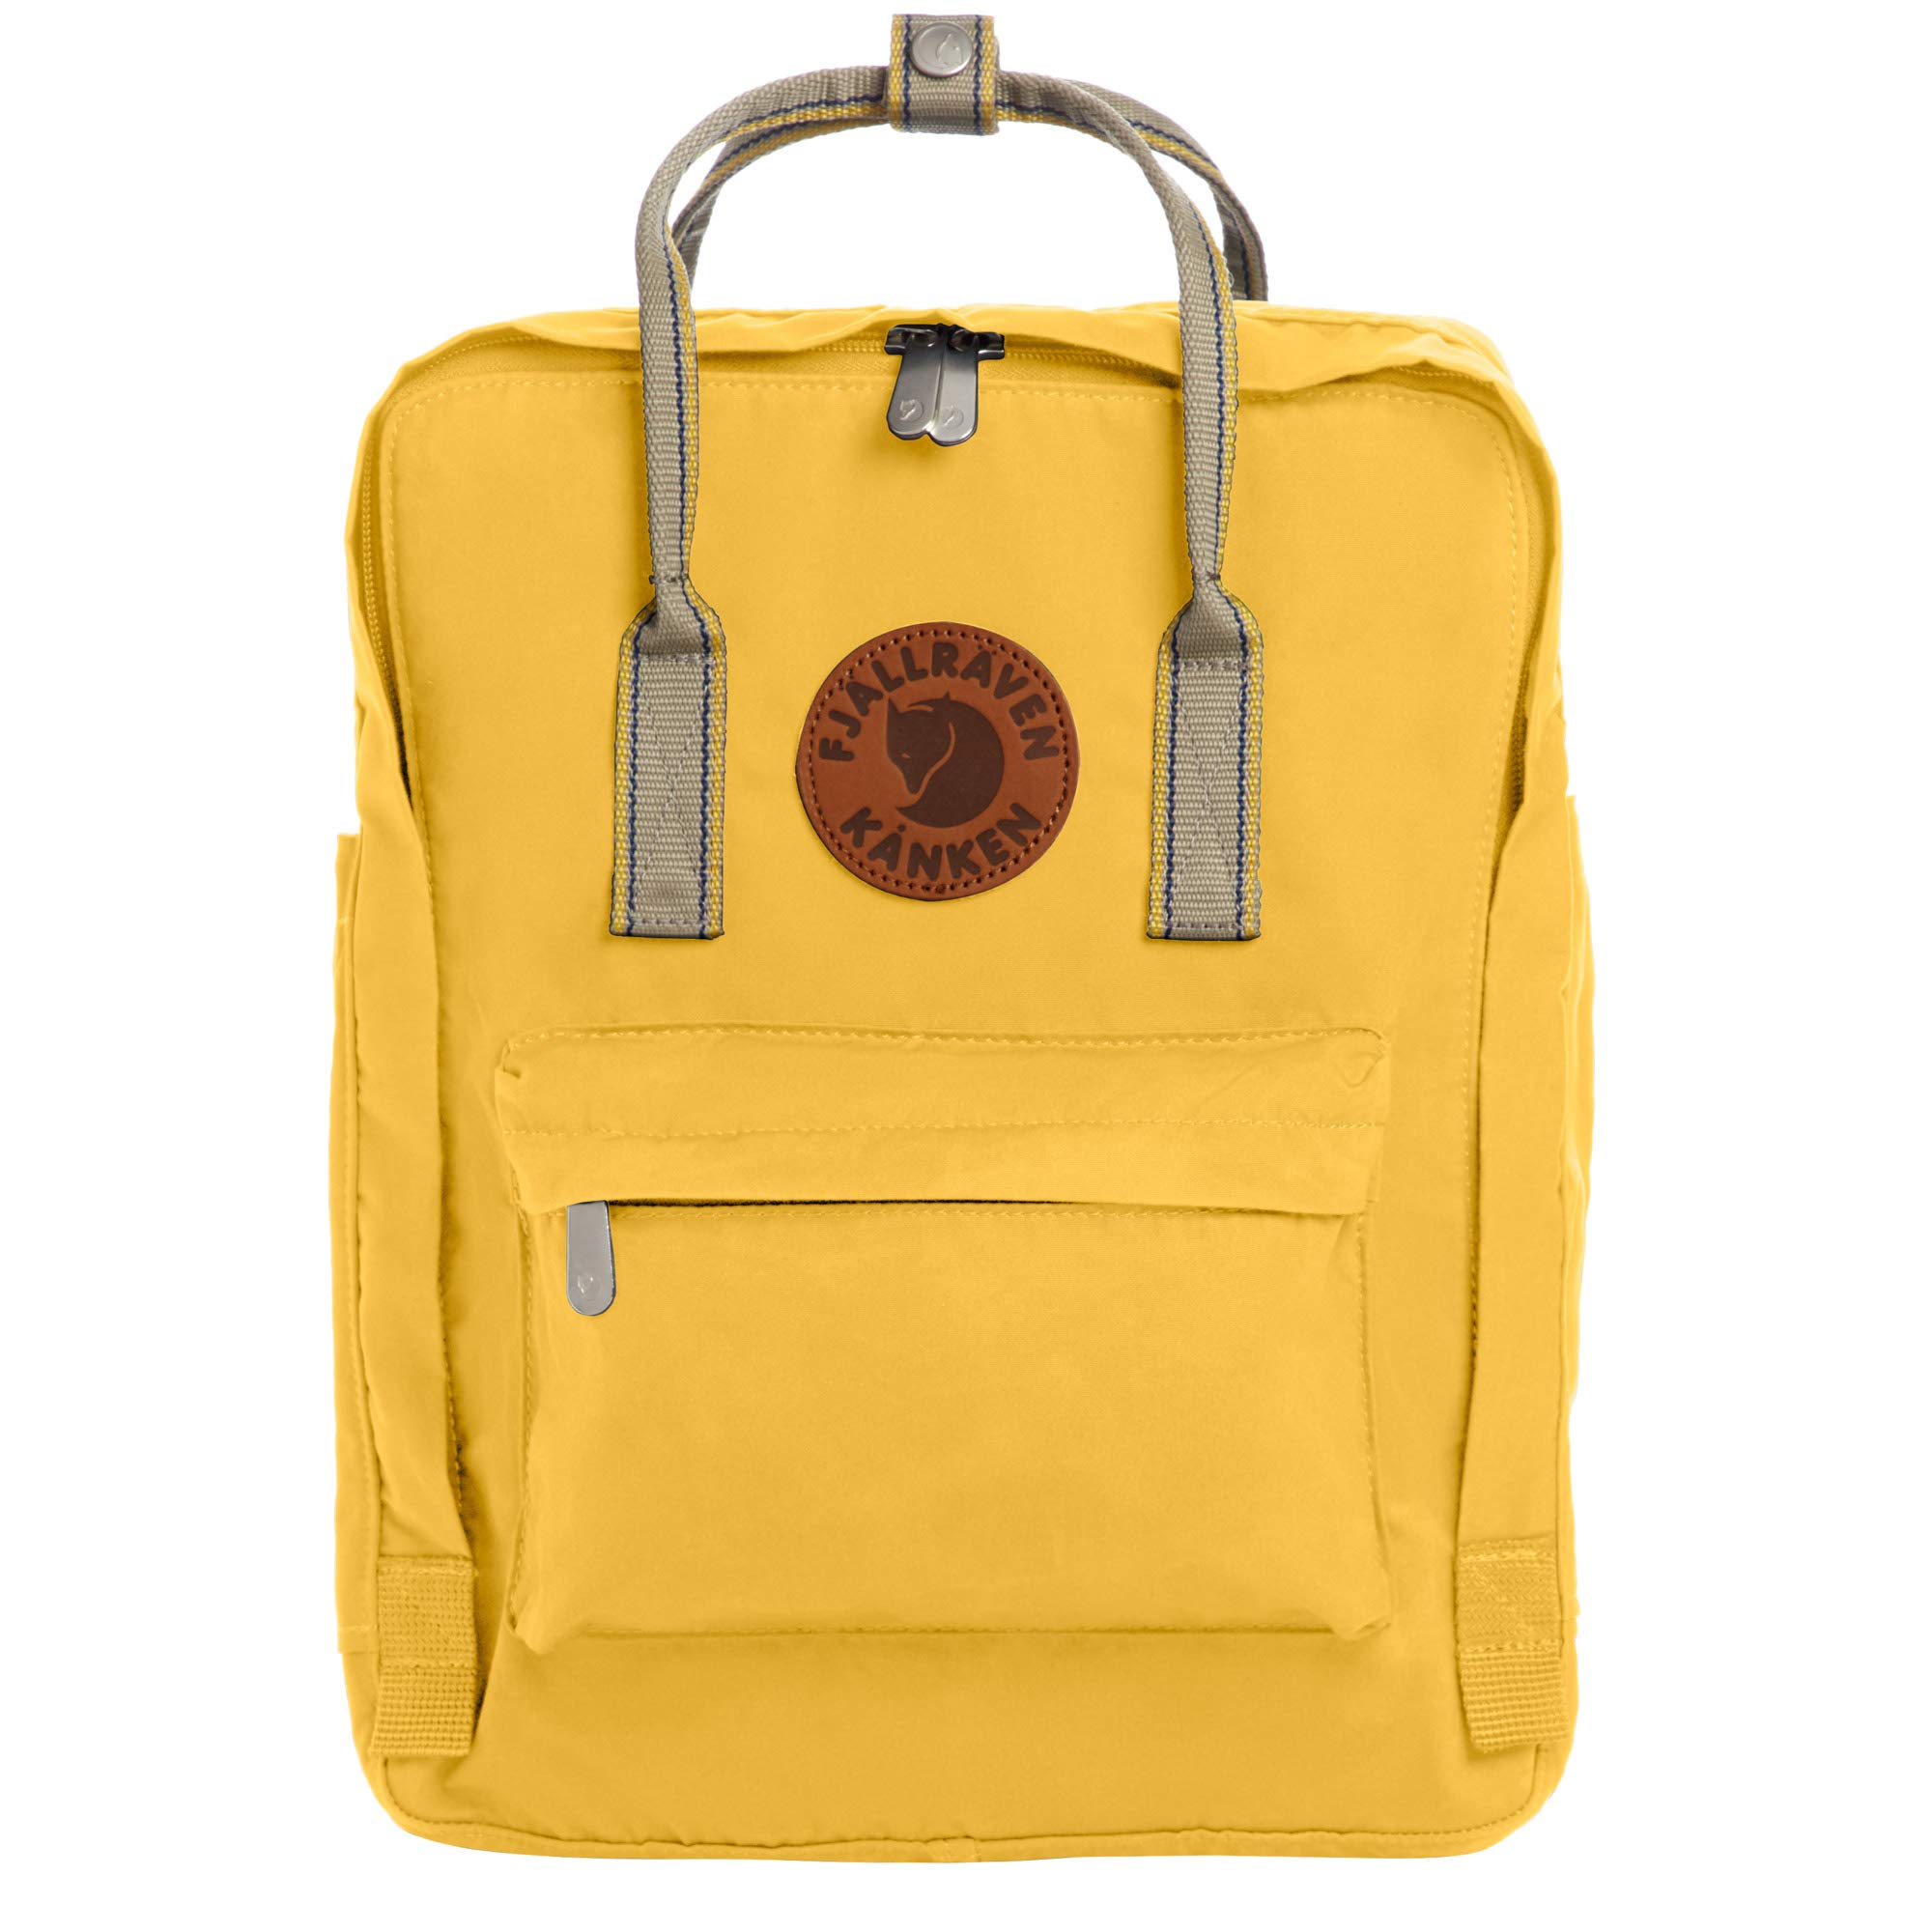 Fjallraven - Kanken Greenland Backpack for Everyday, Dandelion/Greenland Backpack for Everyday Webbing by Fjallraven